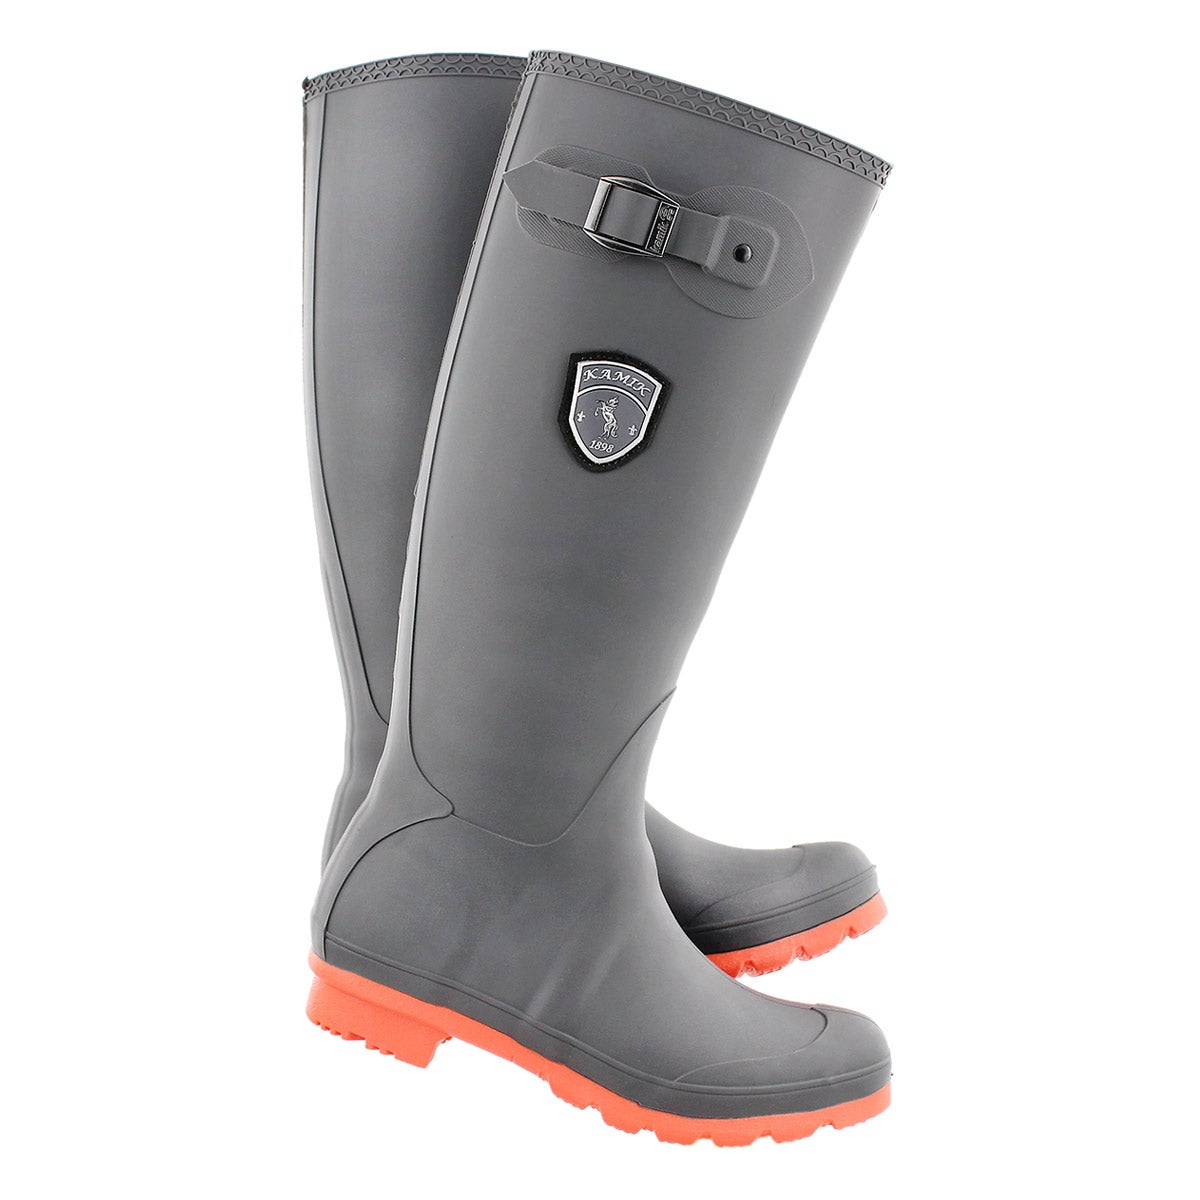 Lds Jennifer charcoal/coral rain boot